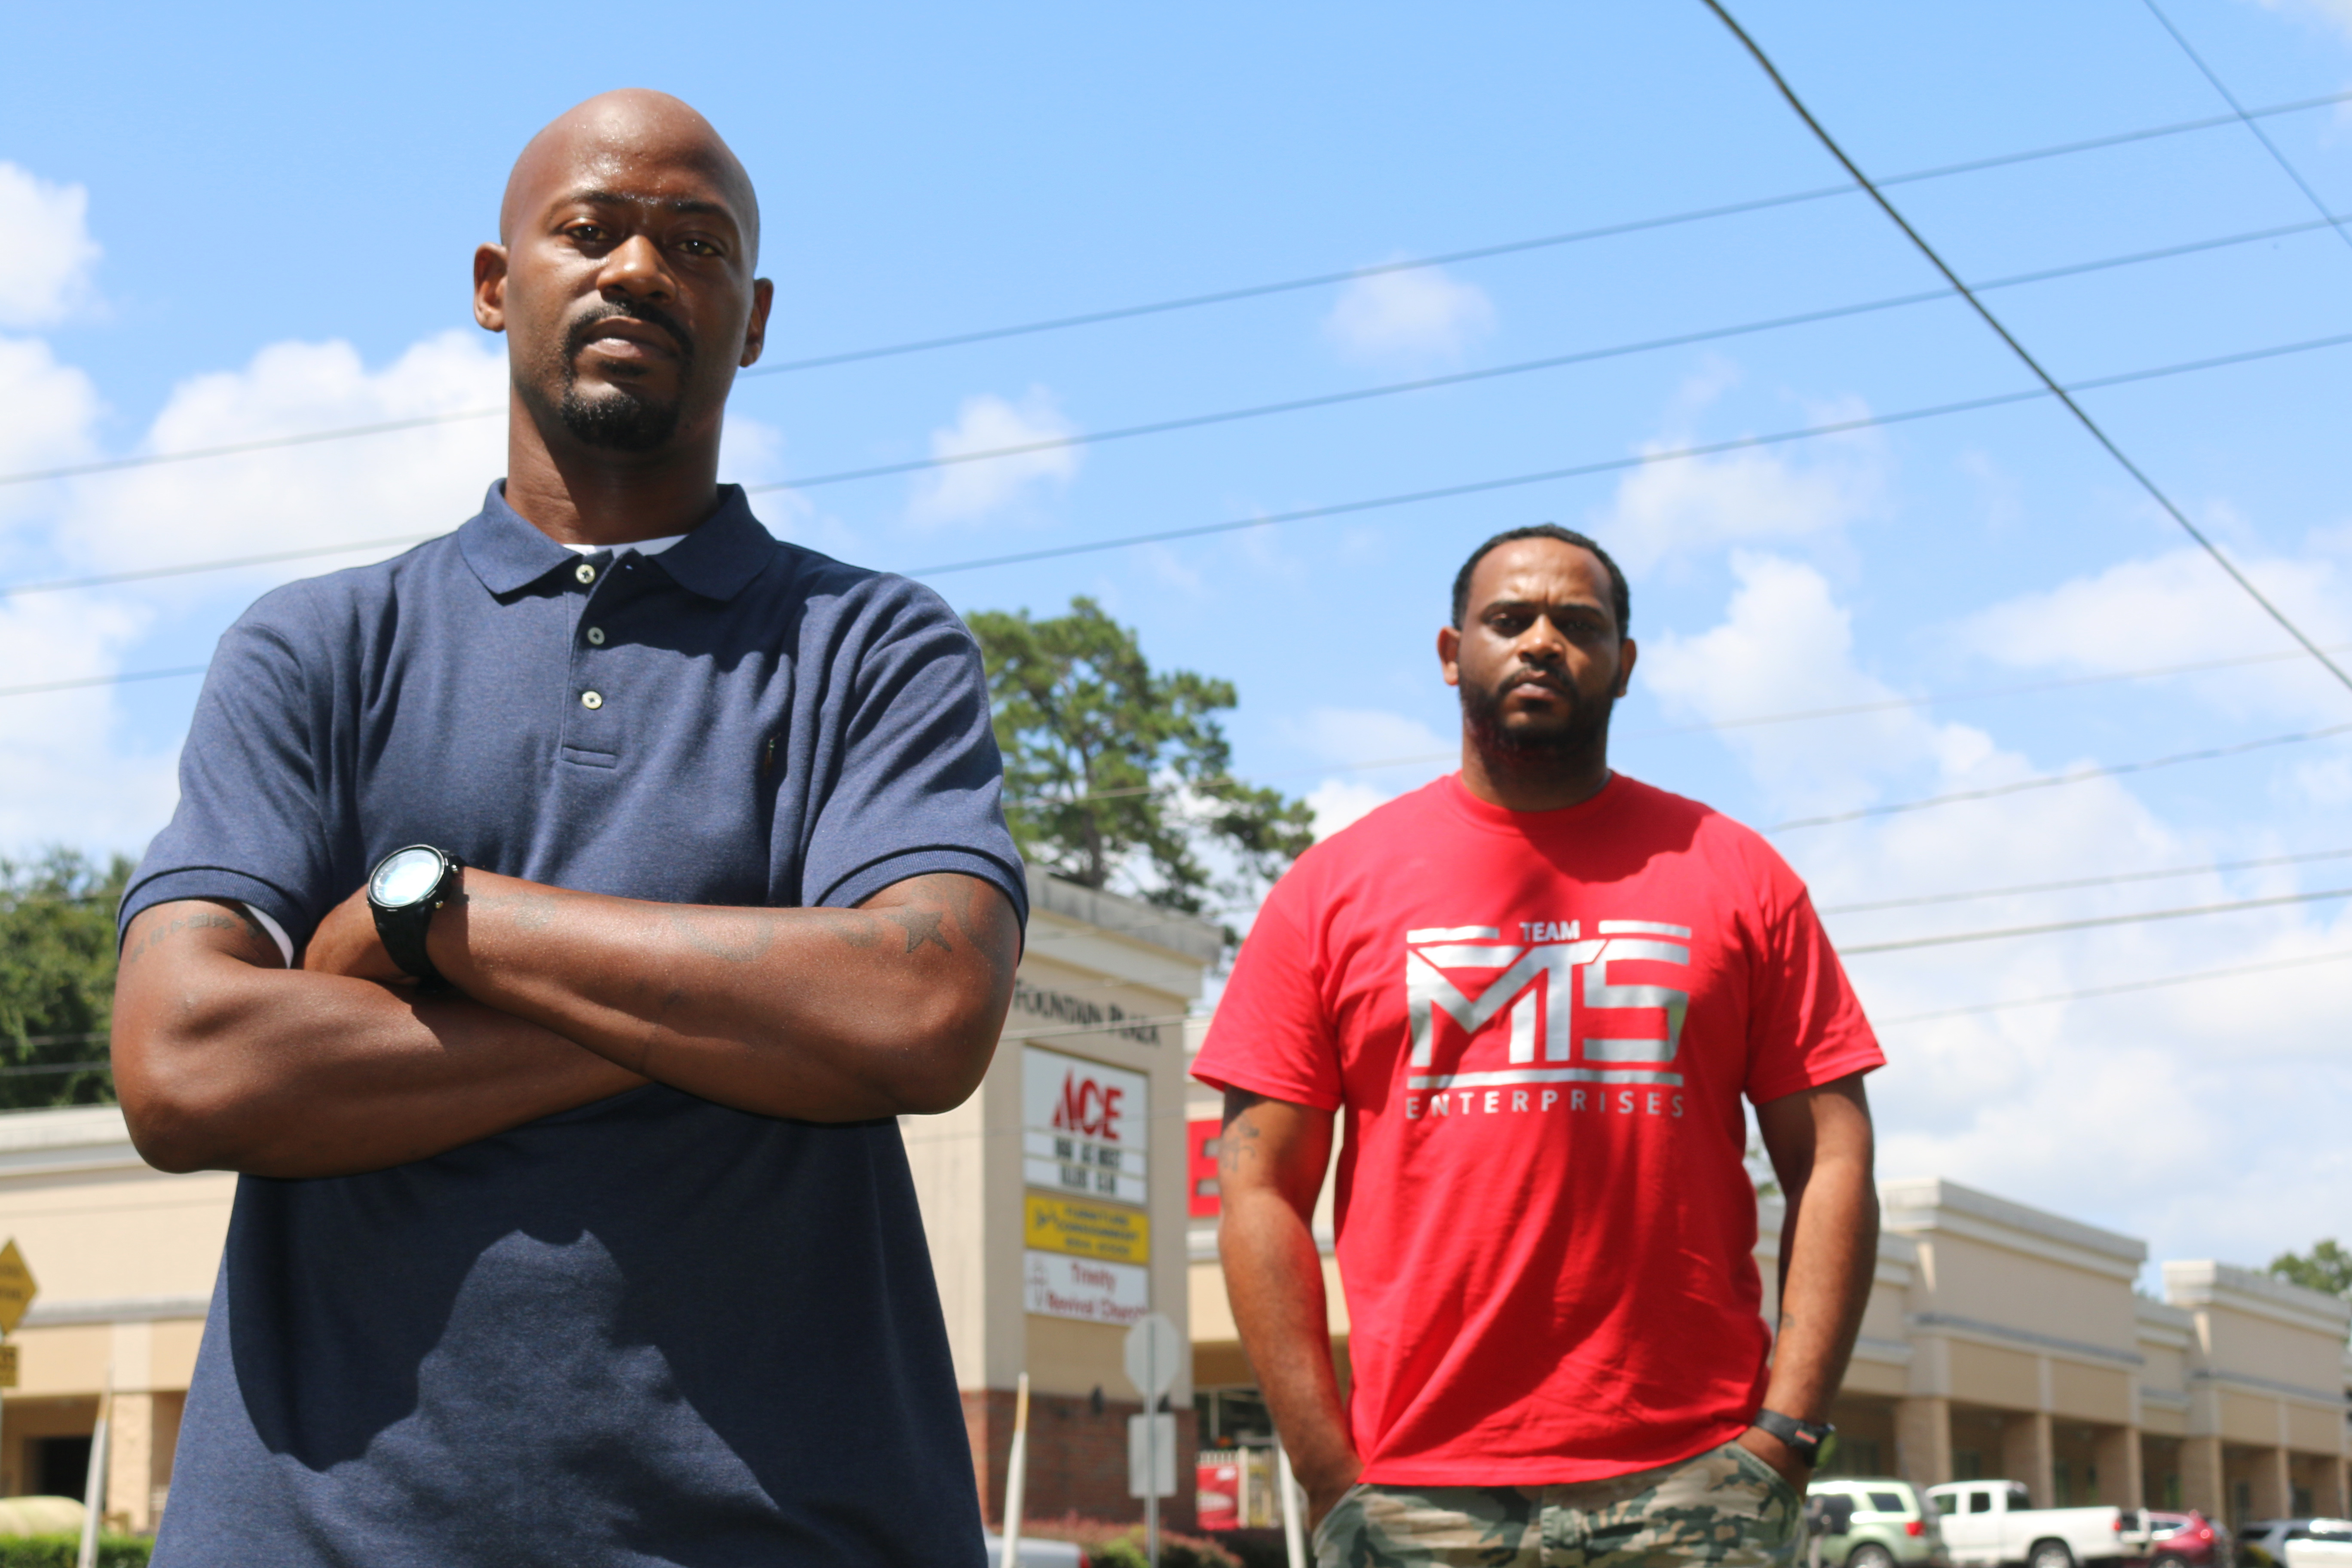 Kendrik Clemons, left, and Charles McMillon pose for a photo on Sept. 2, 2020, in Tallahassee, Florida. The two are raising concerns about an incident a week earlier in which a white couple fired shots at them in what the men call a case of racial profiling.